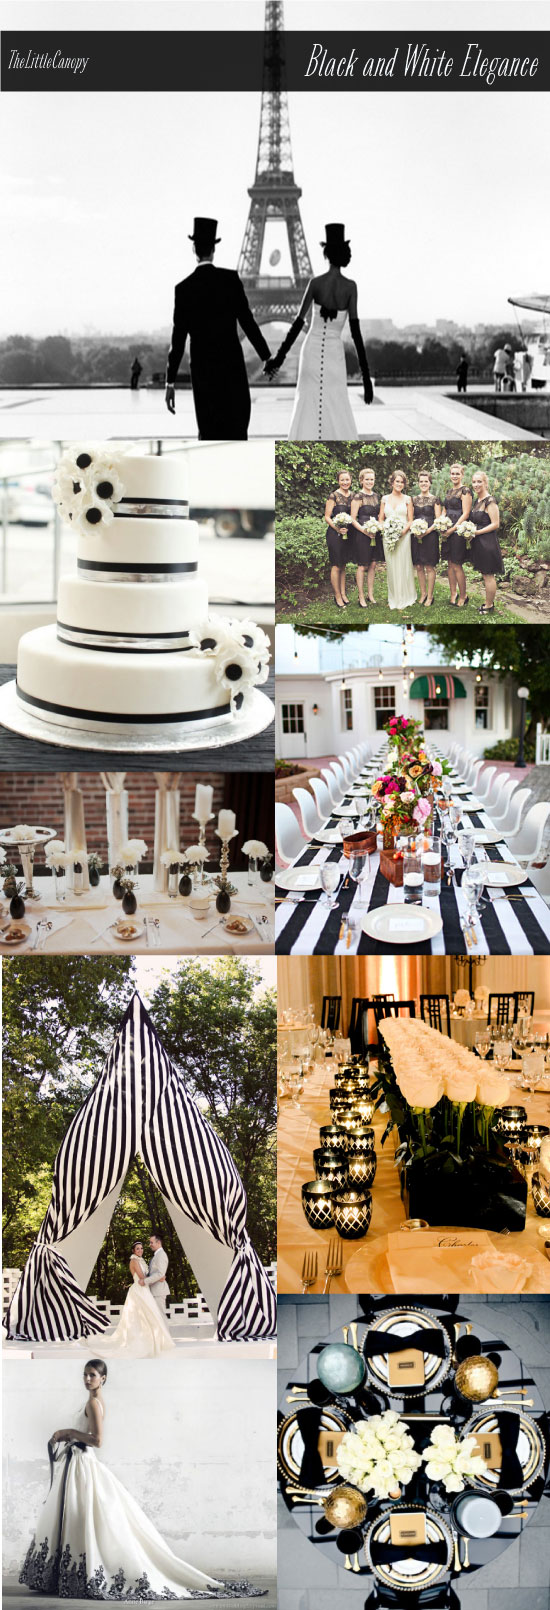 Inspiration Boards Black and White Wedding Elegance